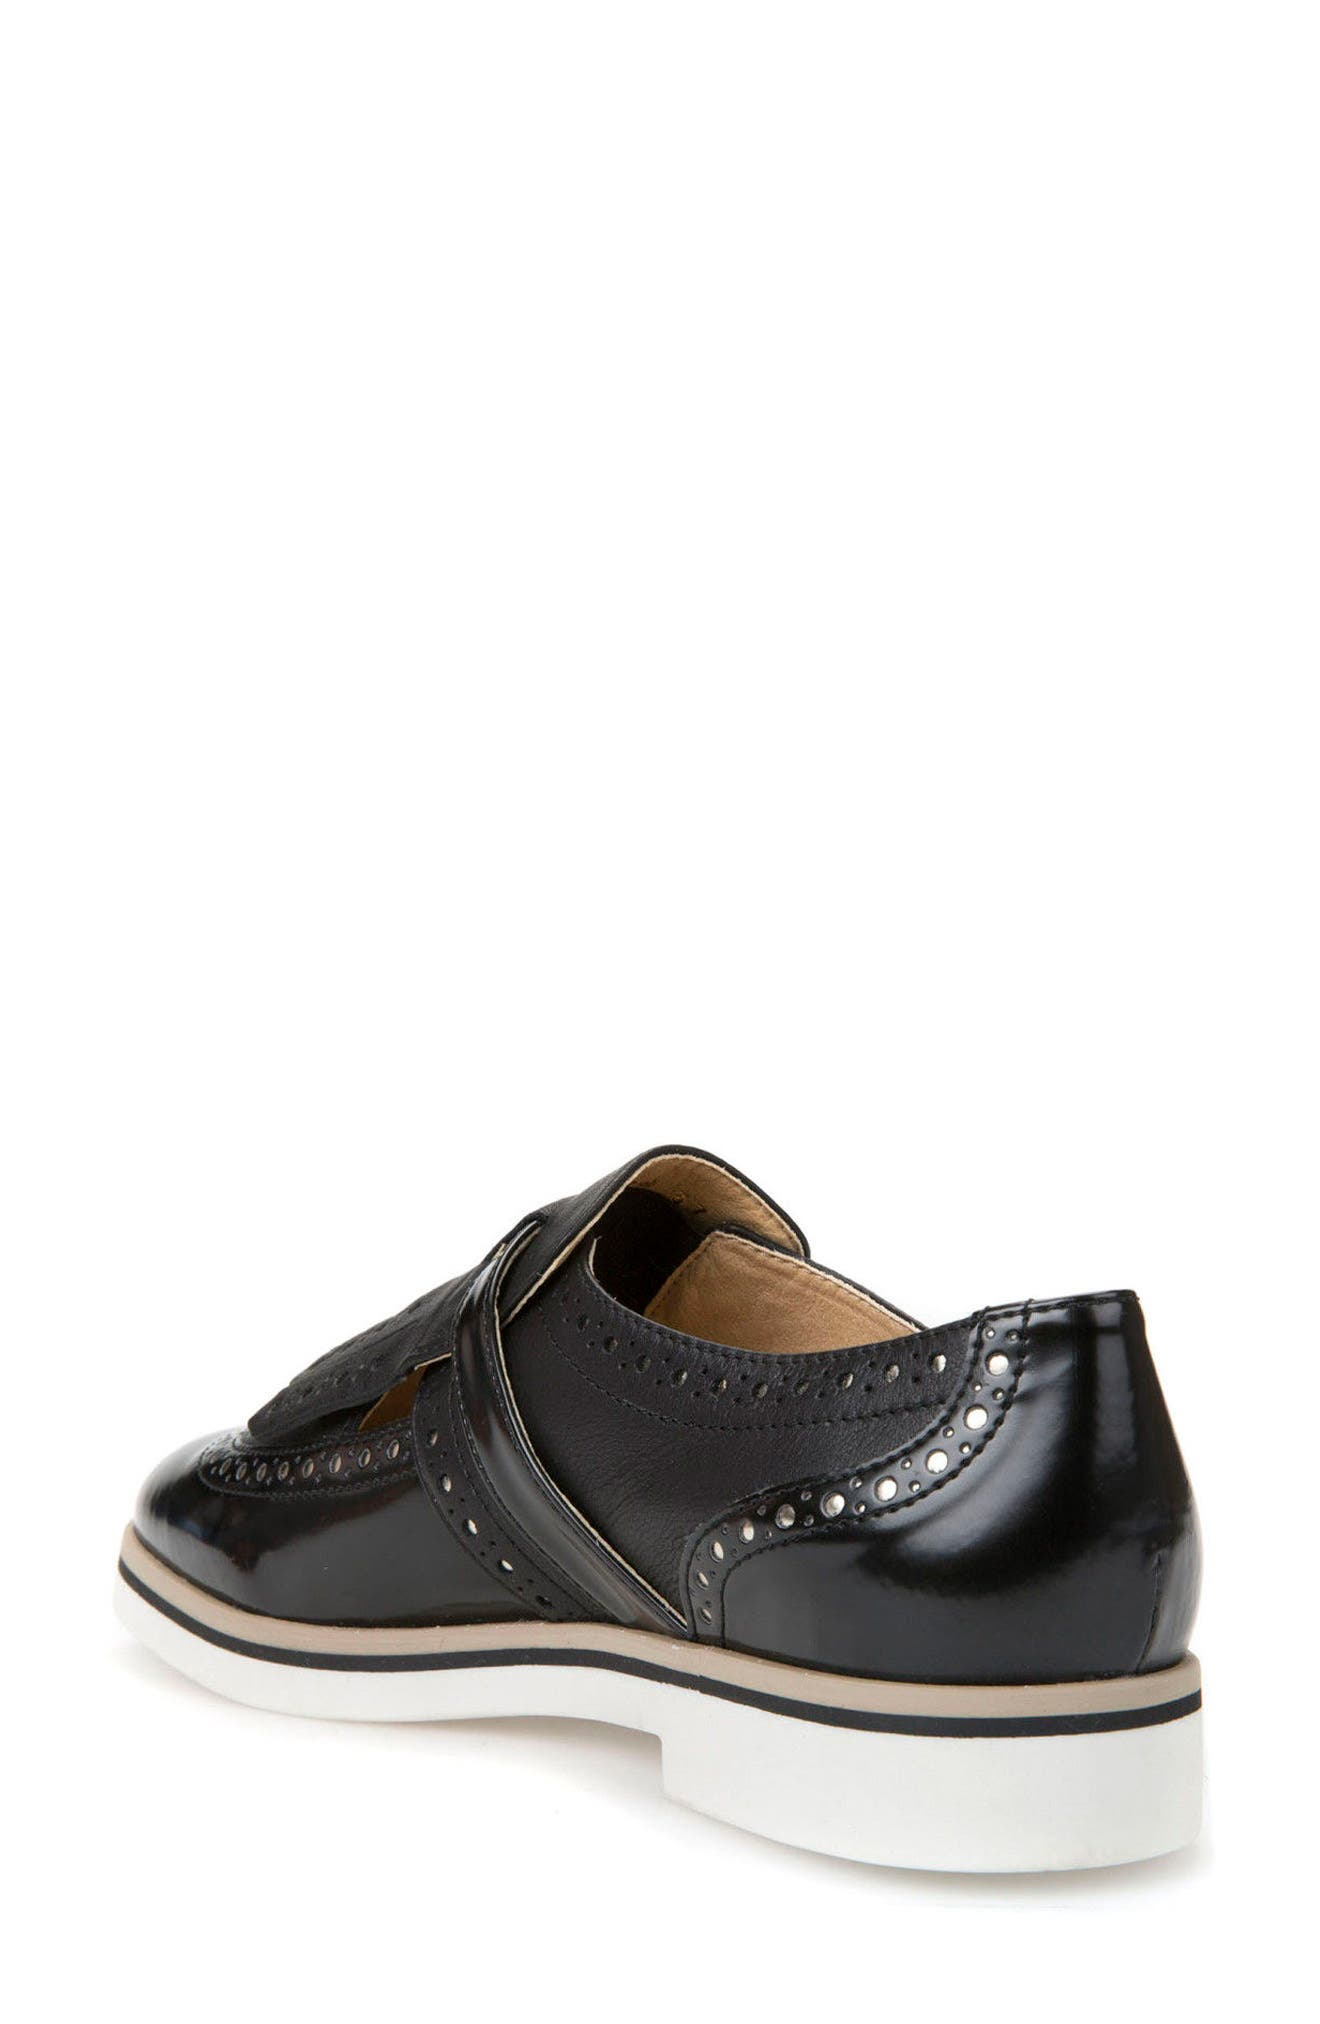 Janalee Cutout Loafer,                             Alternate thumbnail 2, color,                             Black Leather